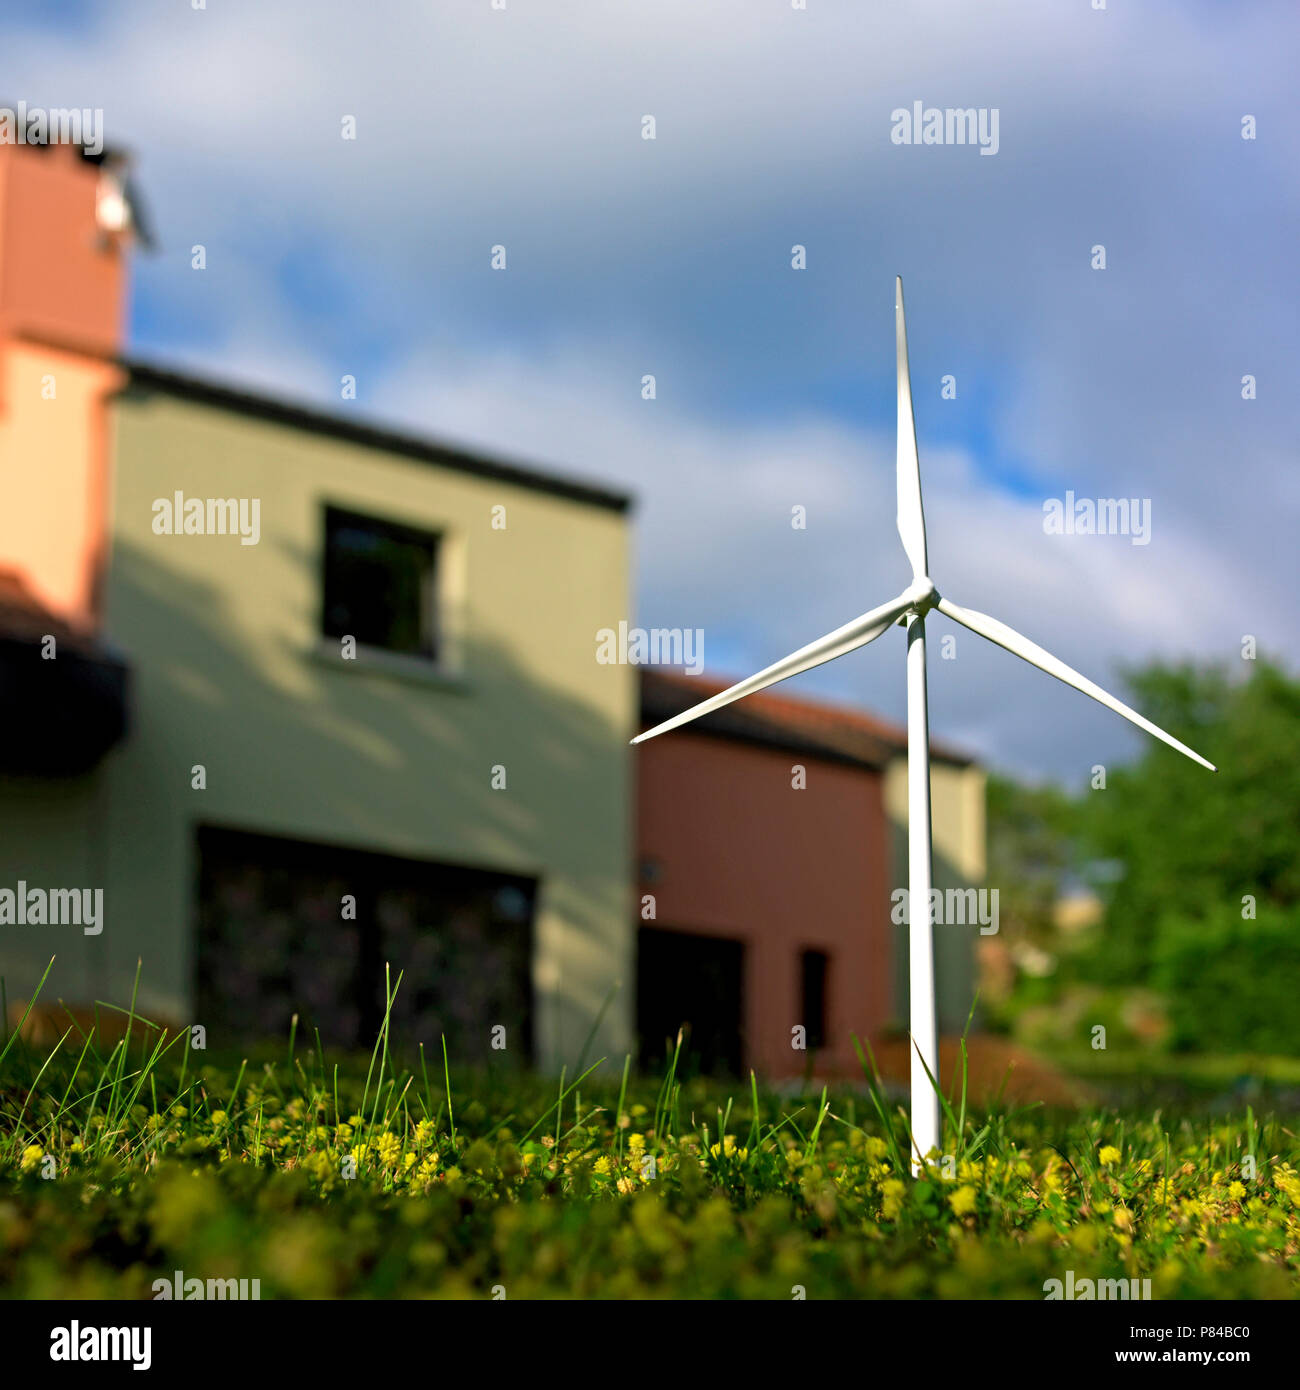 Miniature wind turbine in the grass in front of a sunny house Stock Photo